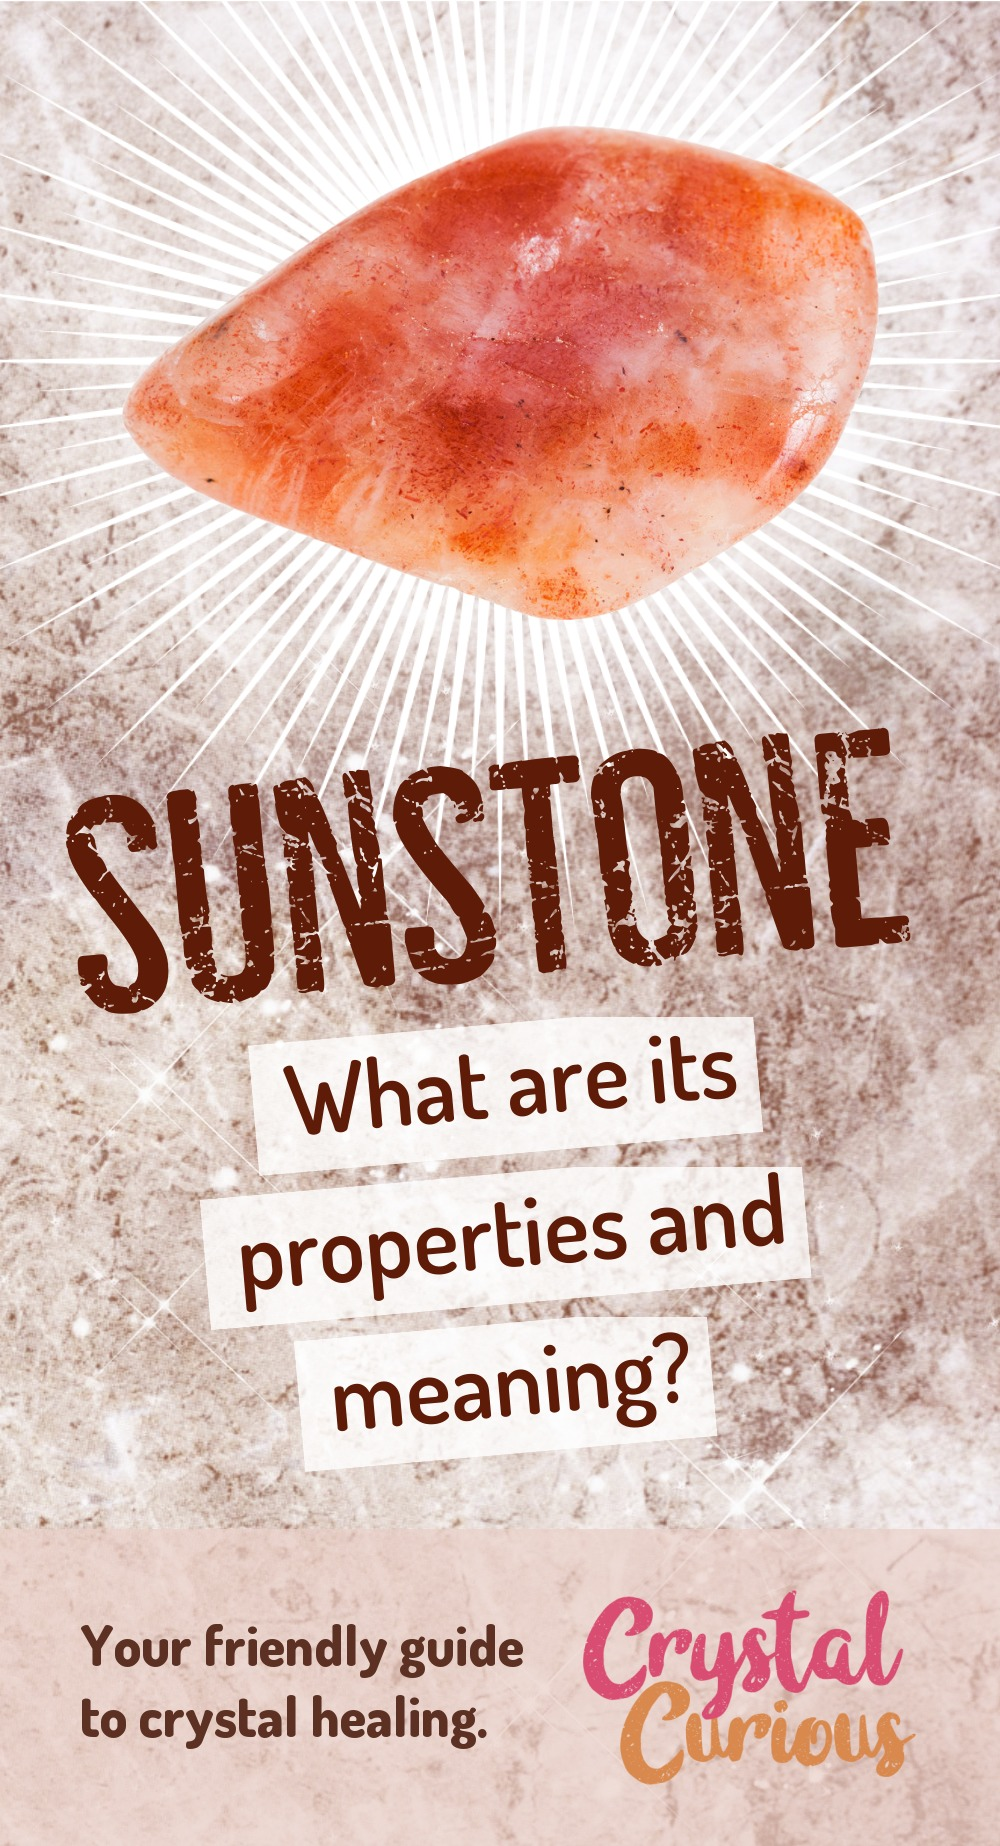 Sunstone Meaning & Healing Properties. Sunstone supports vitality, aliveness, and the confidence and ability to shine no matter the circumstances. Learn  all the crystal & gemstone properties and crystal healing for beginners at CrystalCurious.com. Energy healing, chakra stones, positive energy & vibrations, crystal therapy, crystal meanings. #crystals #crystalhealing #newage  #positiveenergy  #gemstones #energyhealing  #crystalcurious